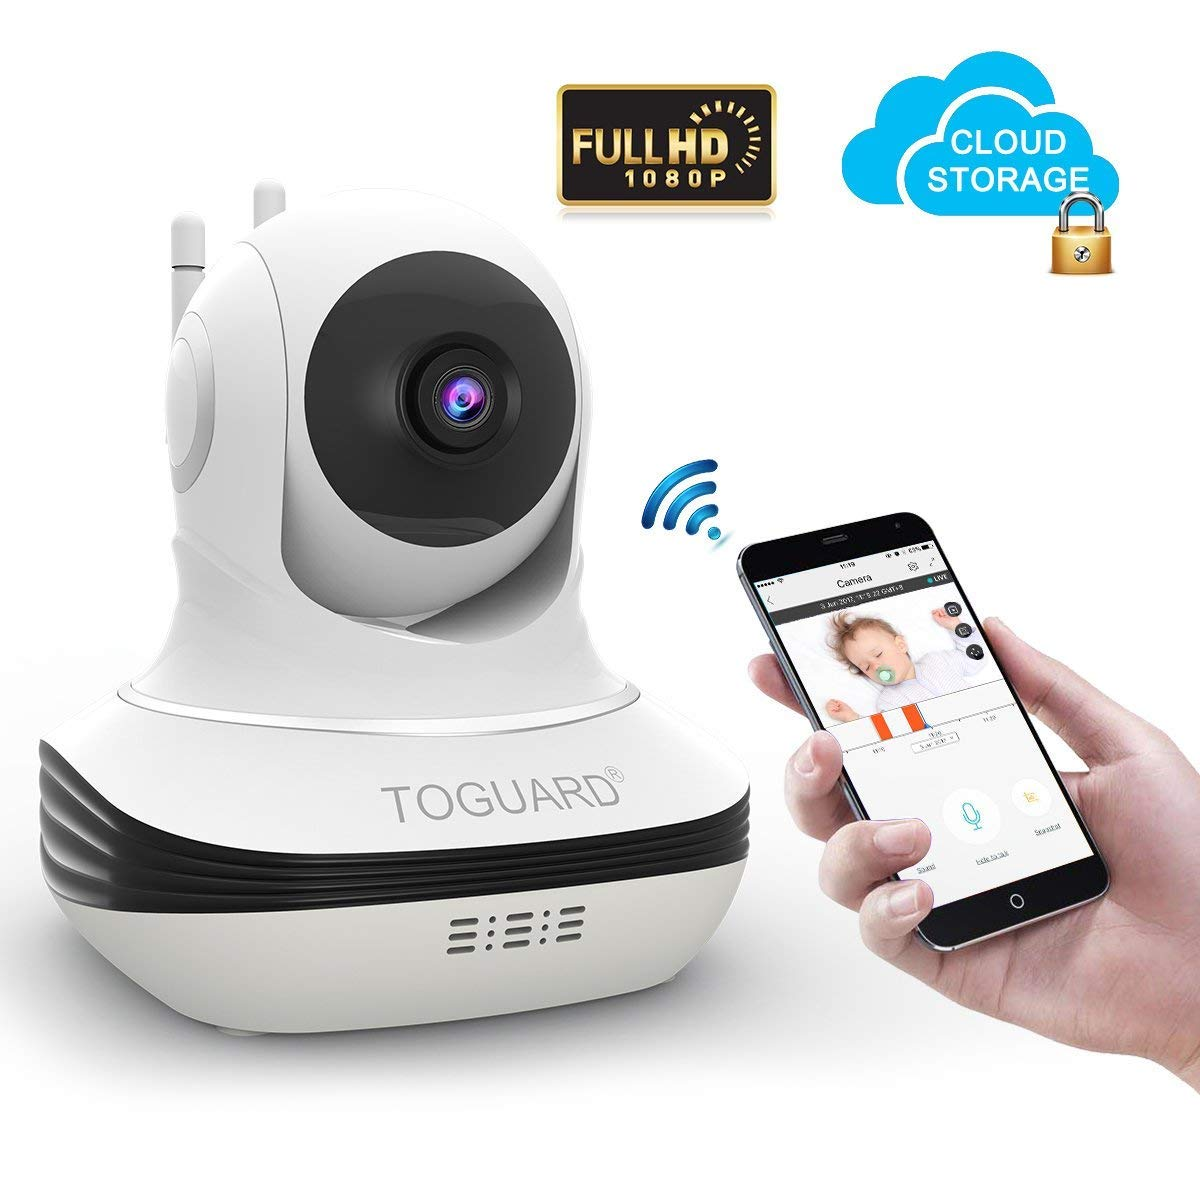 TOGUARD Wireless Security Camera, Cloud Storage Live Steam 1080P WiFi Baby Monitor Home Surveillance IP Camera, Pan/Tilt, Two Way Audio, Night Vision by Android iOS App